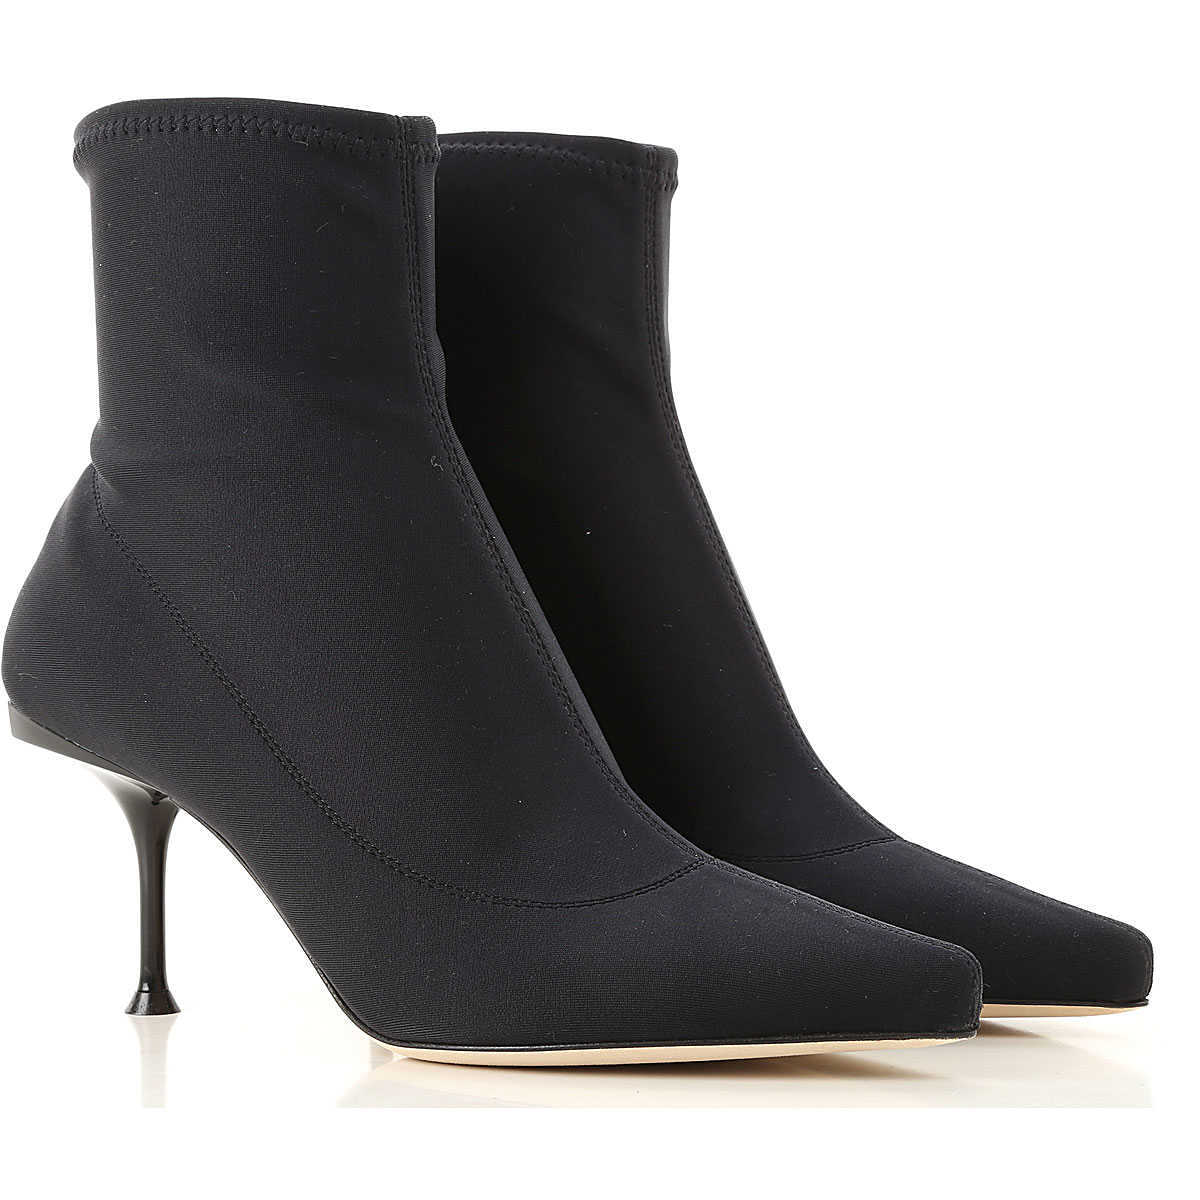 Sergio Rossi Boots for Women Booties - GOOFASH